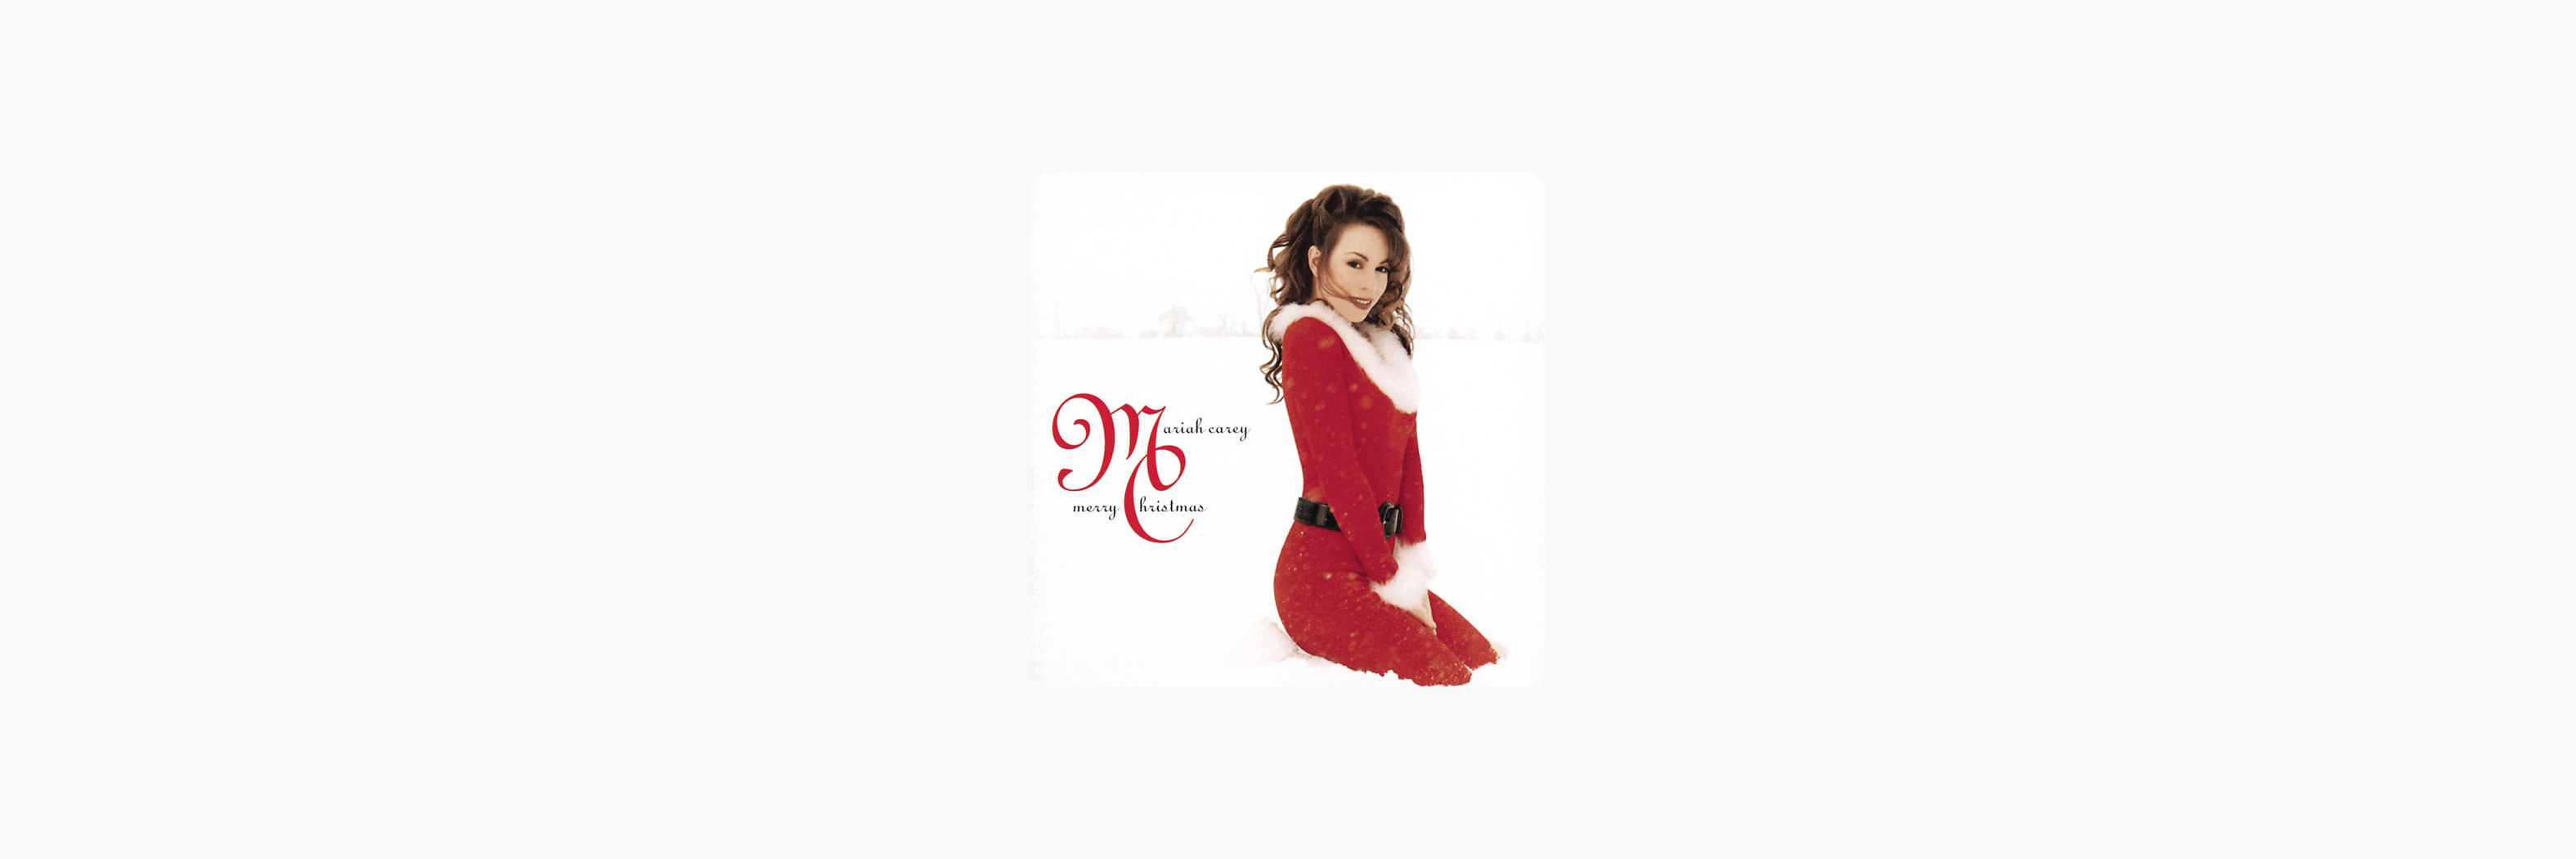 All I Want For Christmas Is You Mariah Carey Applemusic